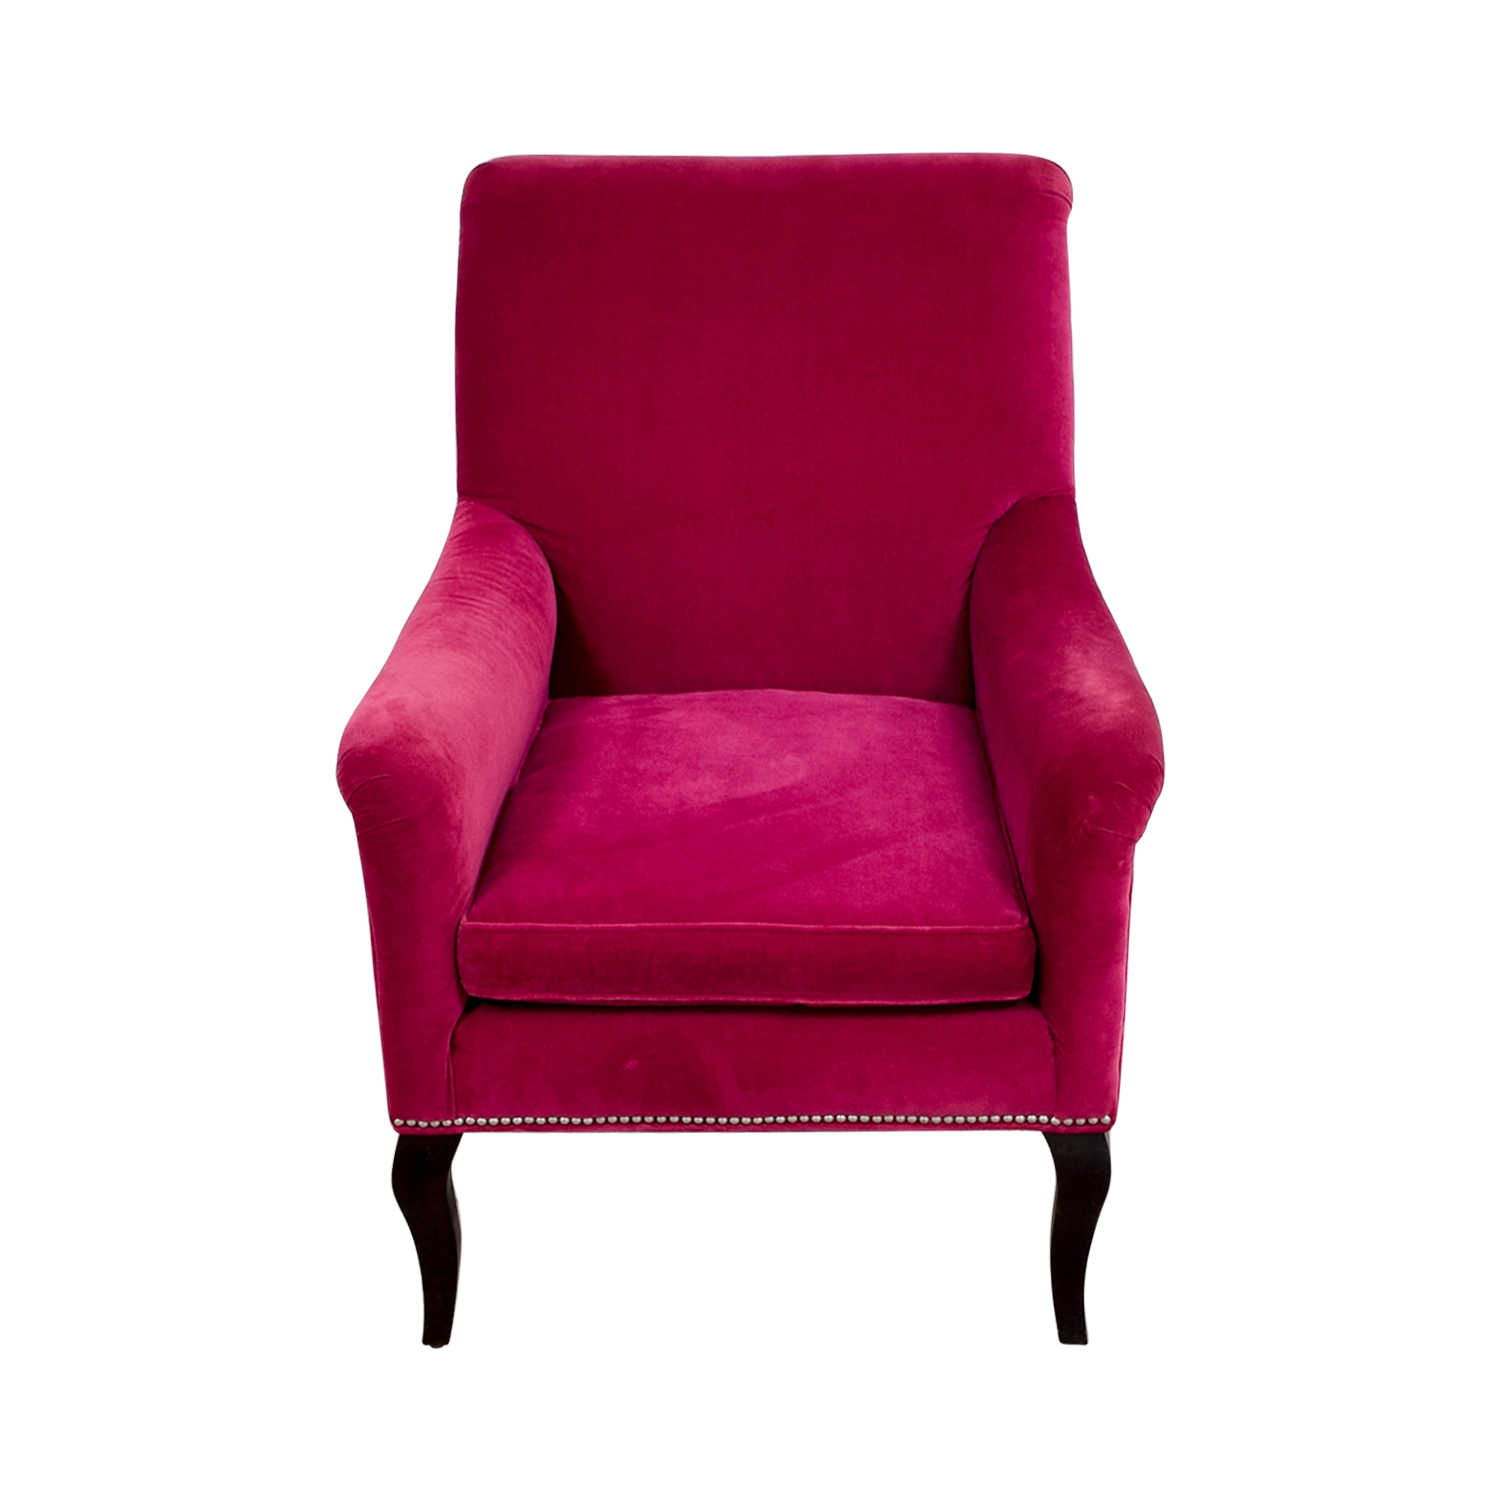 Pink Accent Chair: Crate & Barrel Crate & Barrel Pink Velvet Chair